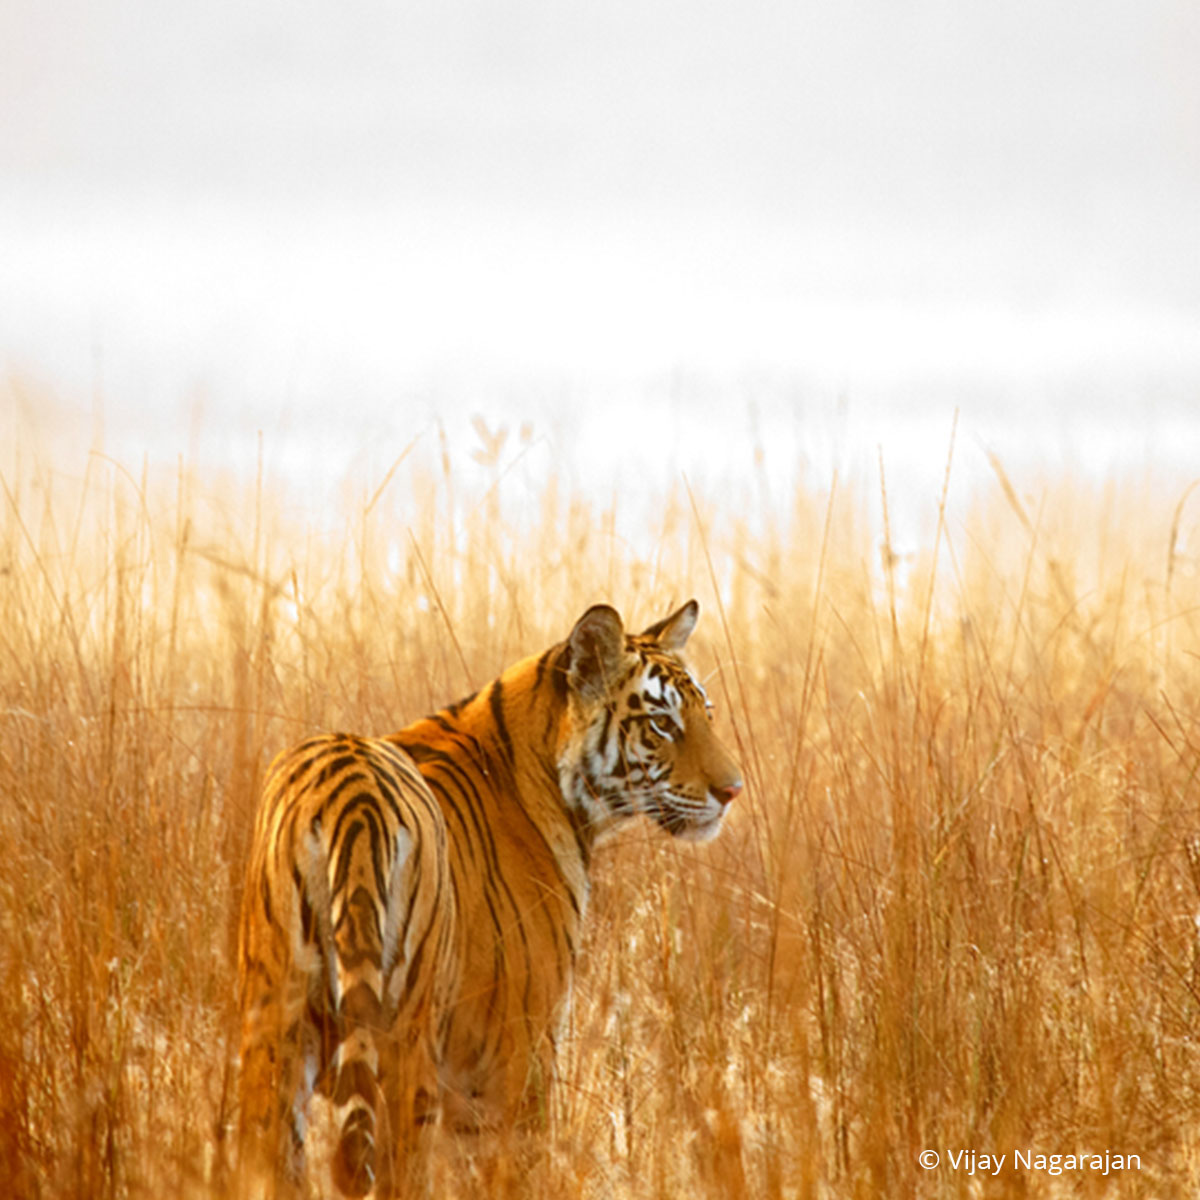 standing firm against the snaring of tigers - wwf